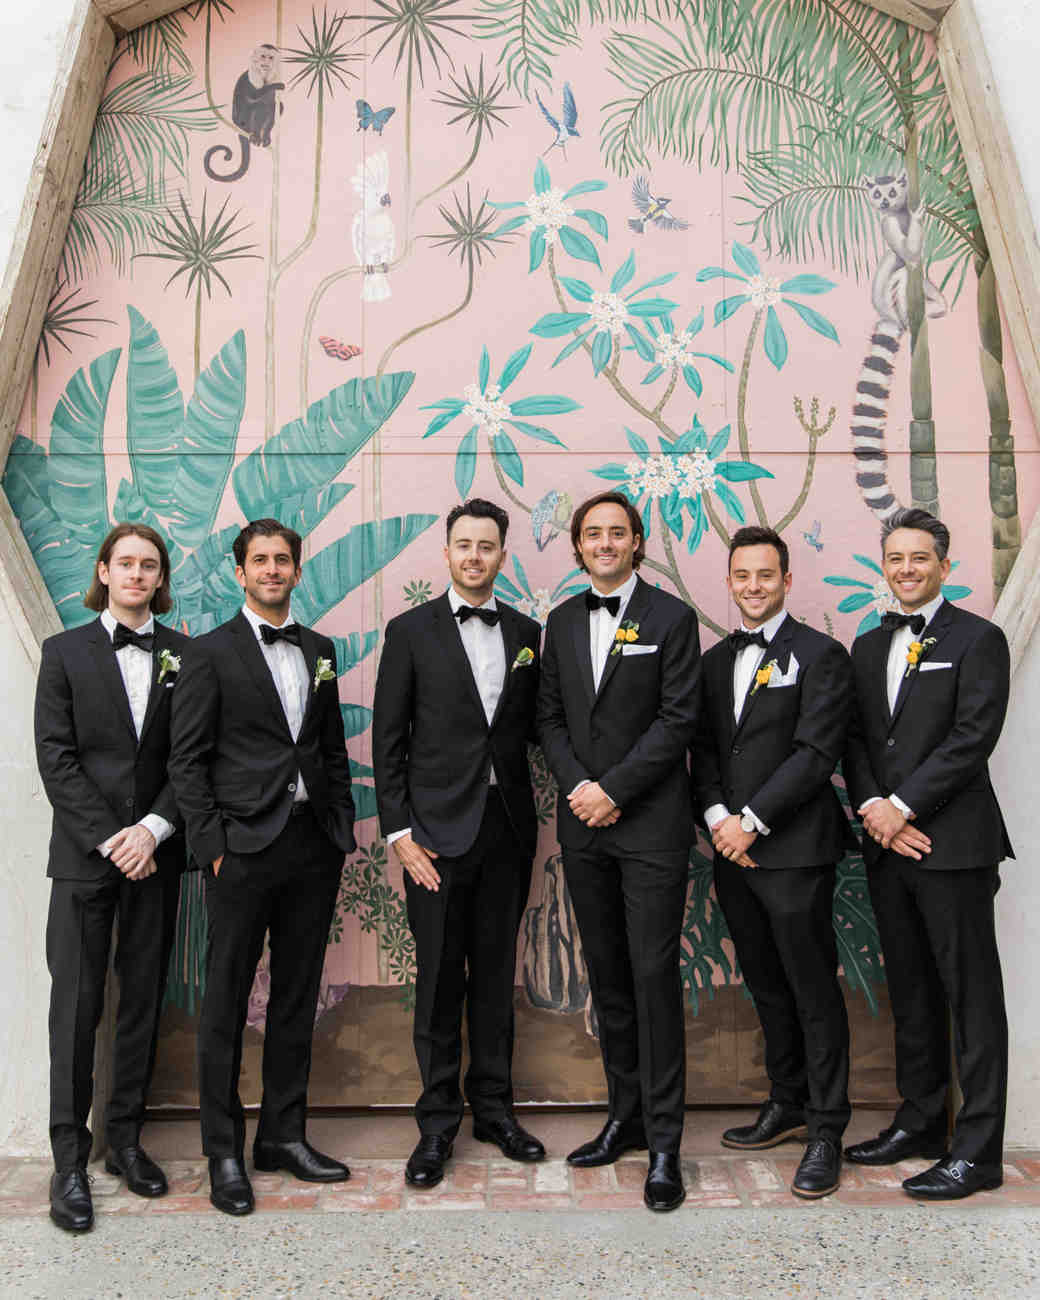 groom and groomsman posting in front of painted wall